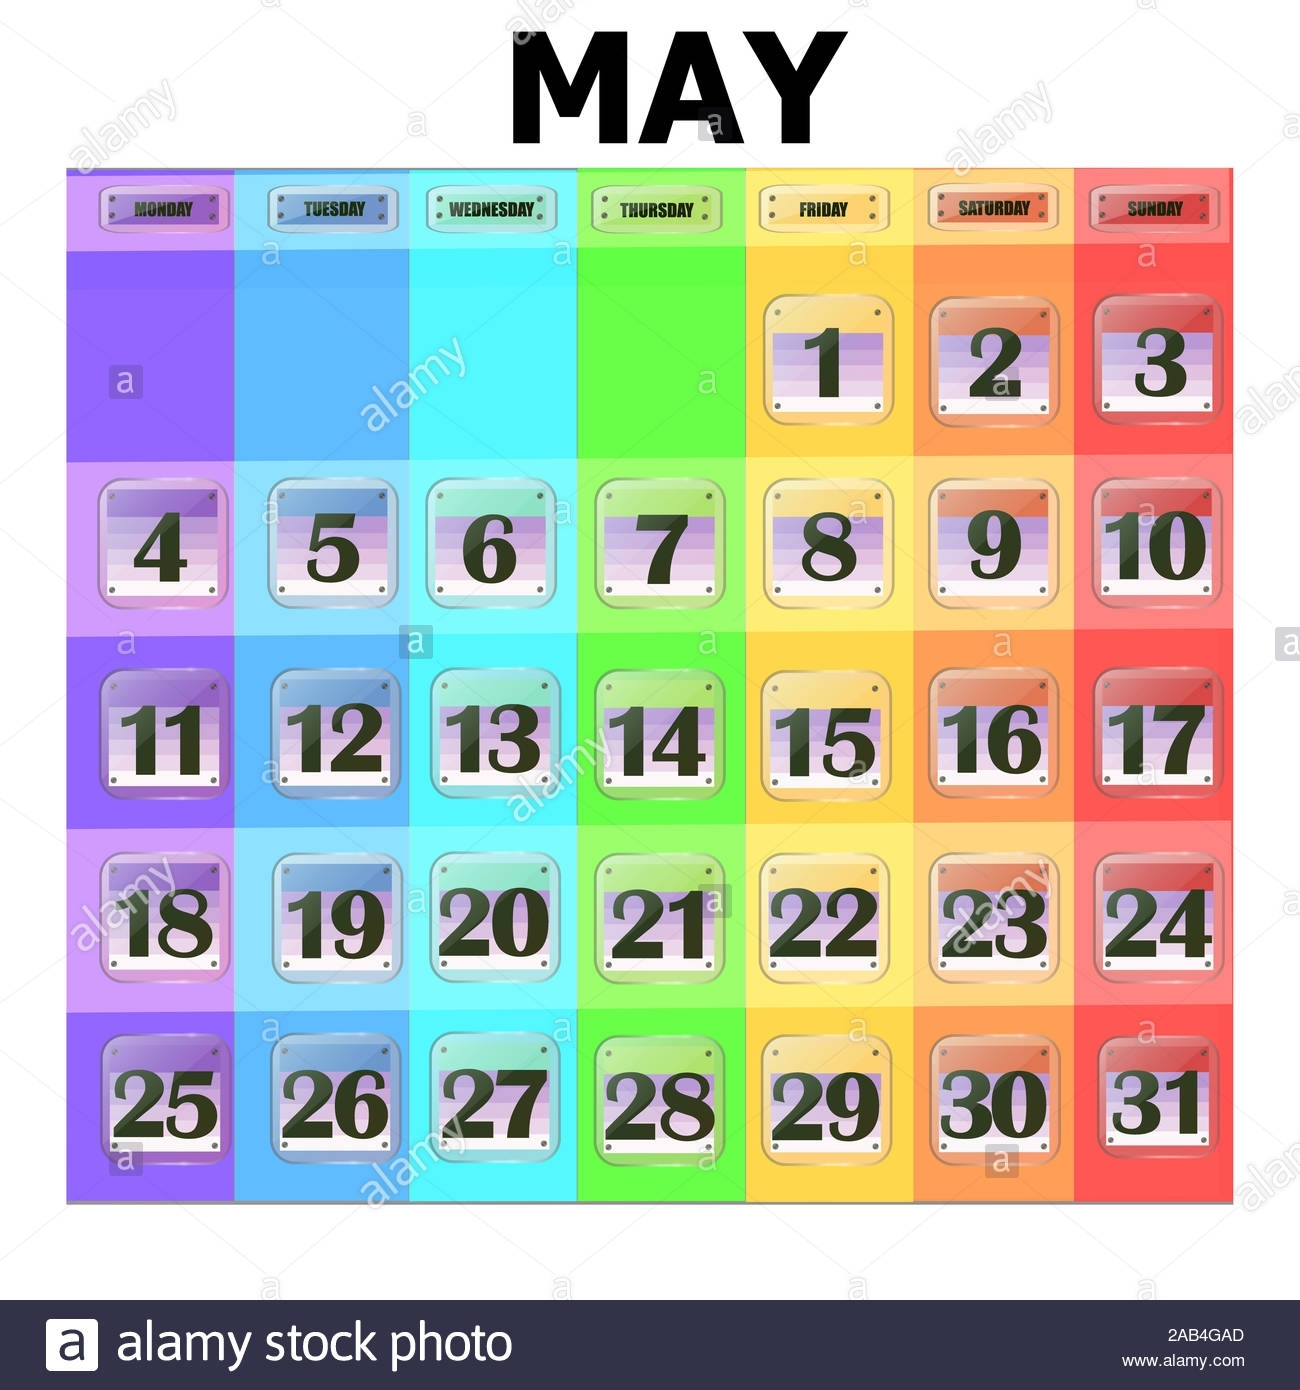 Colorful Calendar For May 2020 In English. Set Of Buttons throughout What Are The Special Days In 2020